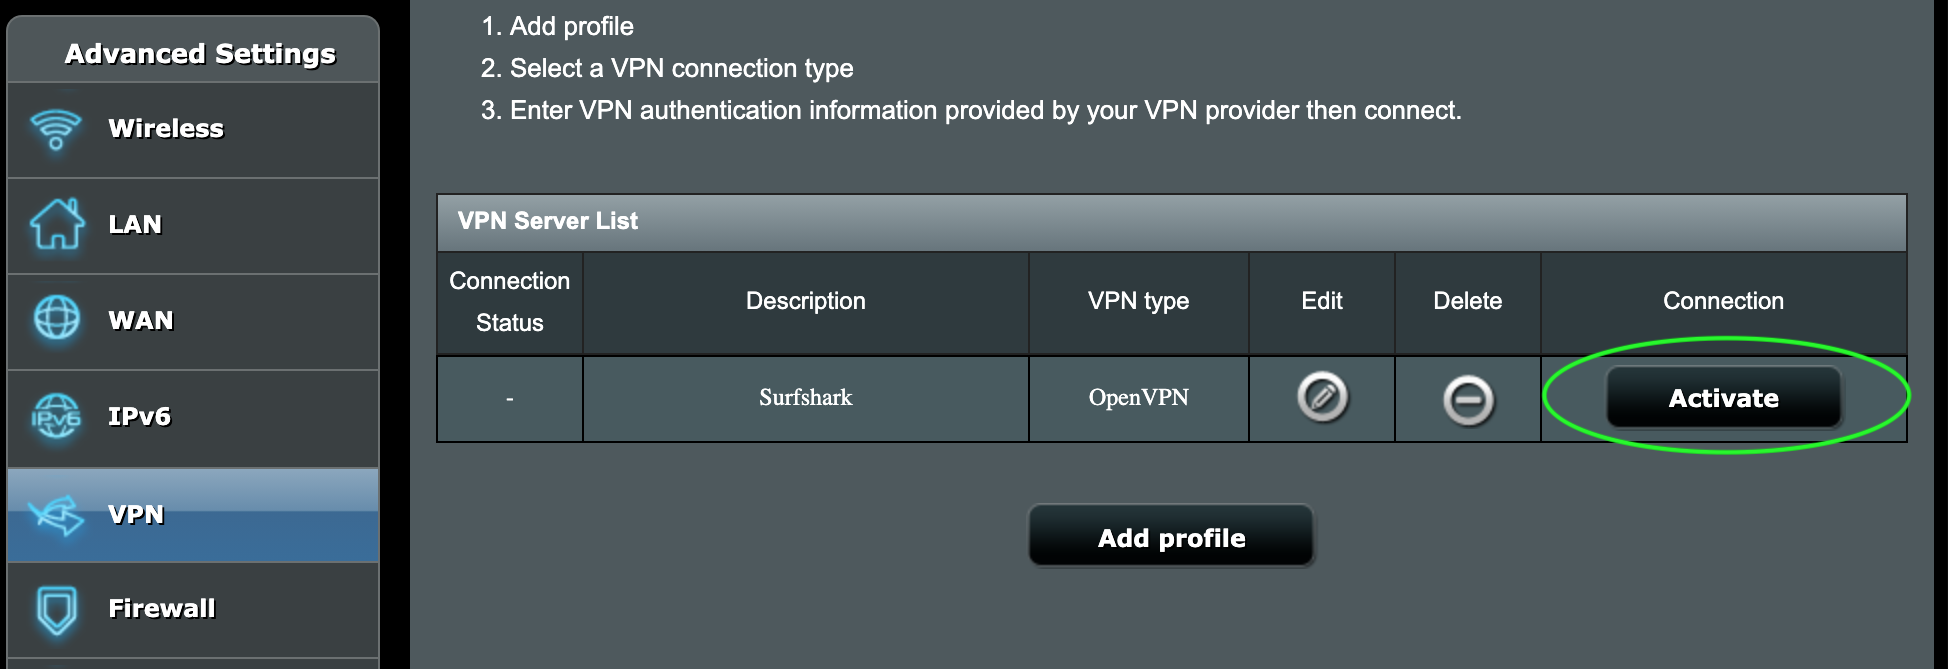 VPN table list with the button to activate